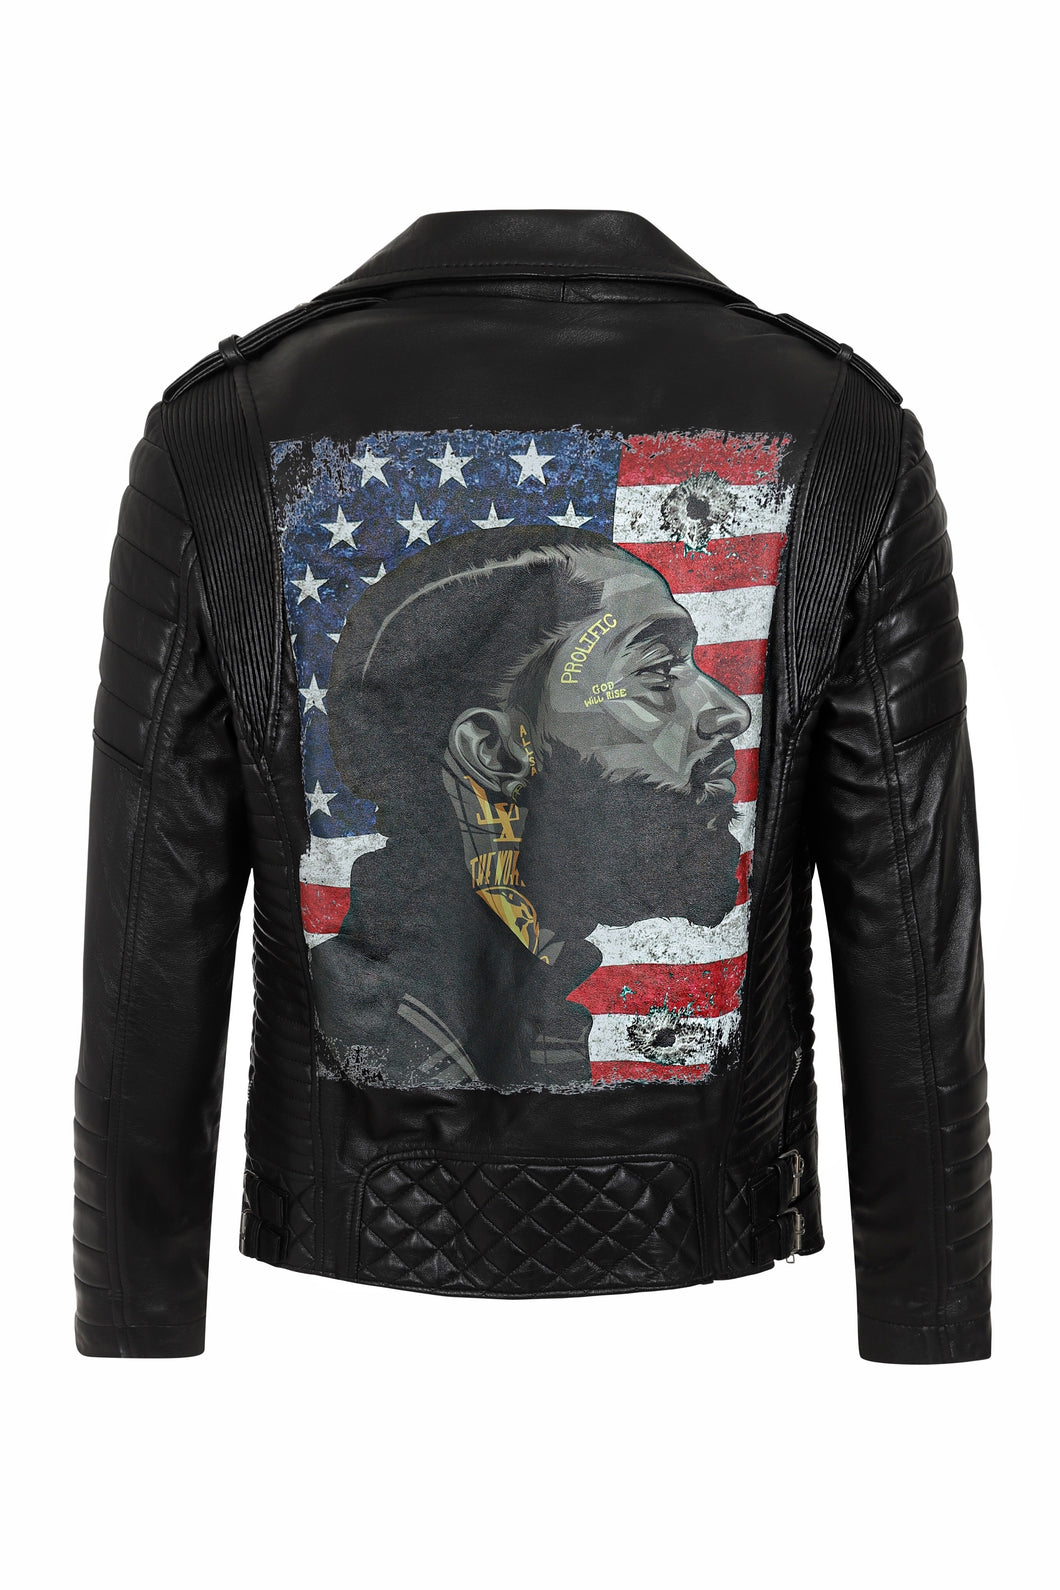 NIPSEY HUSSLE LEATHER JACKET - BLACK